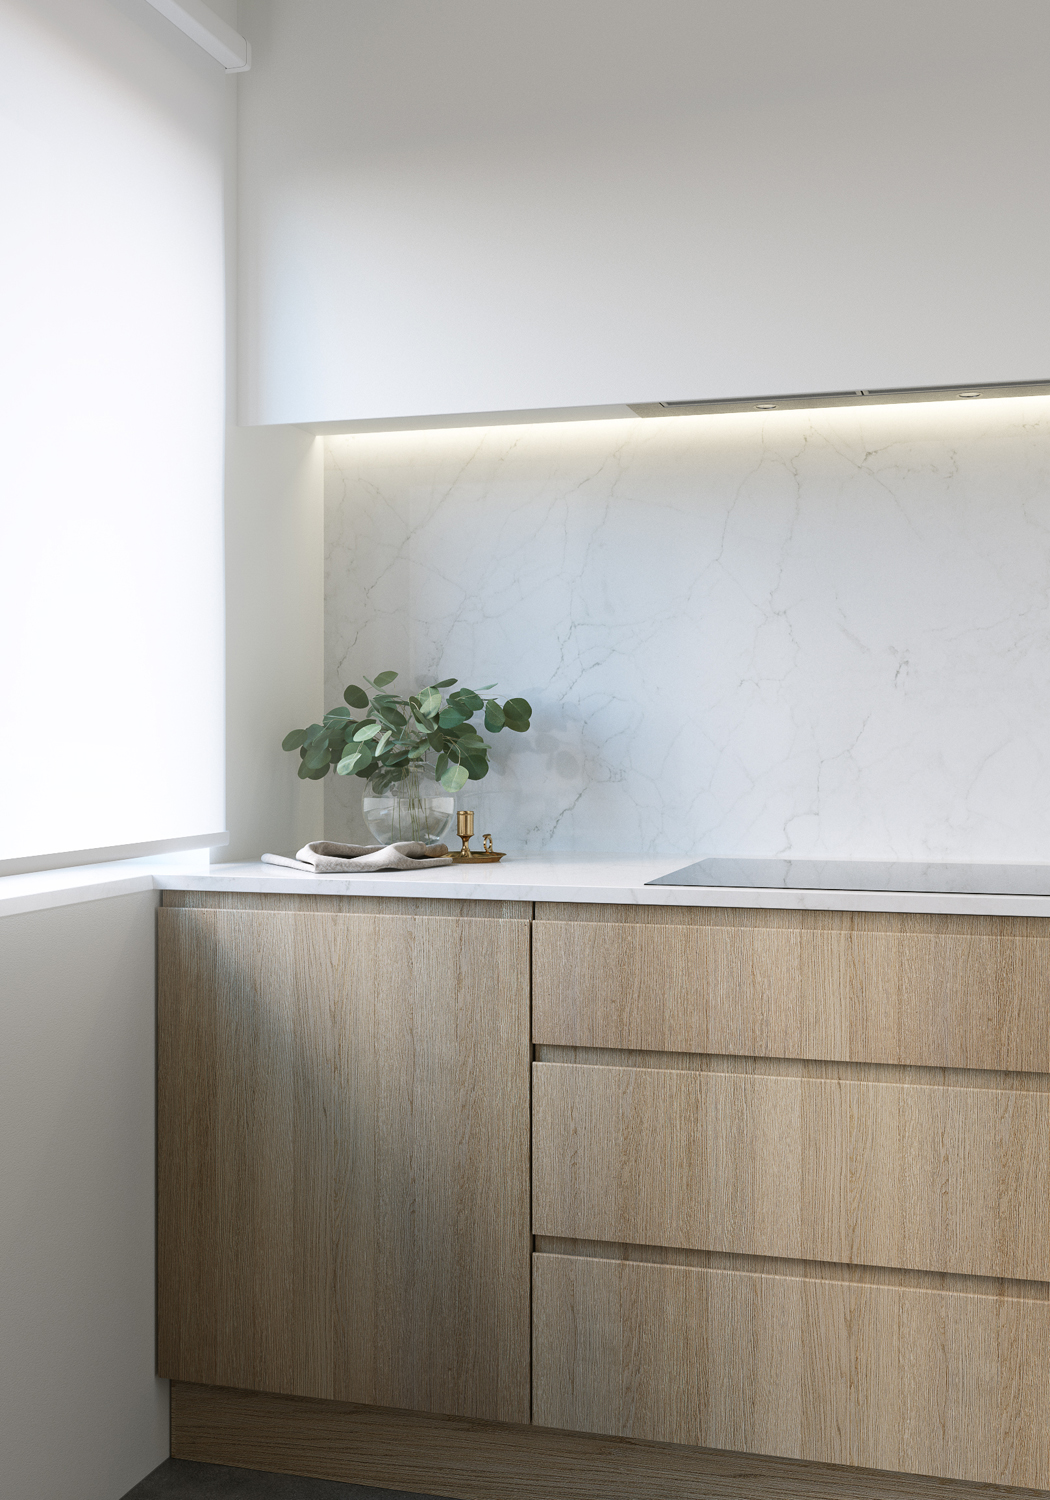 E design kitchen and dining area, 3d kitchen visualisation, e-design process, small space interior design, concrete floor, timber veneer cabinetry, marble slab backsplash, marble slab countertop, white roller shades